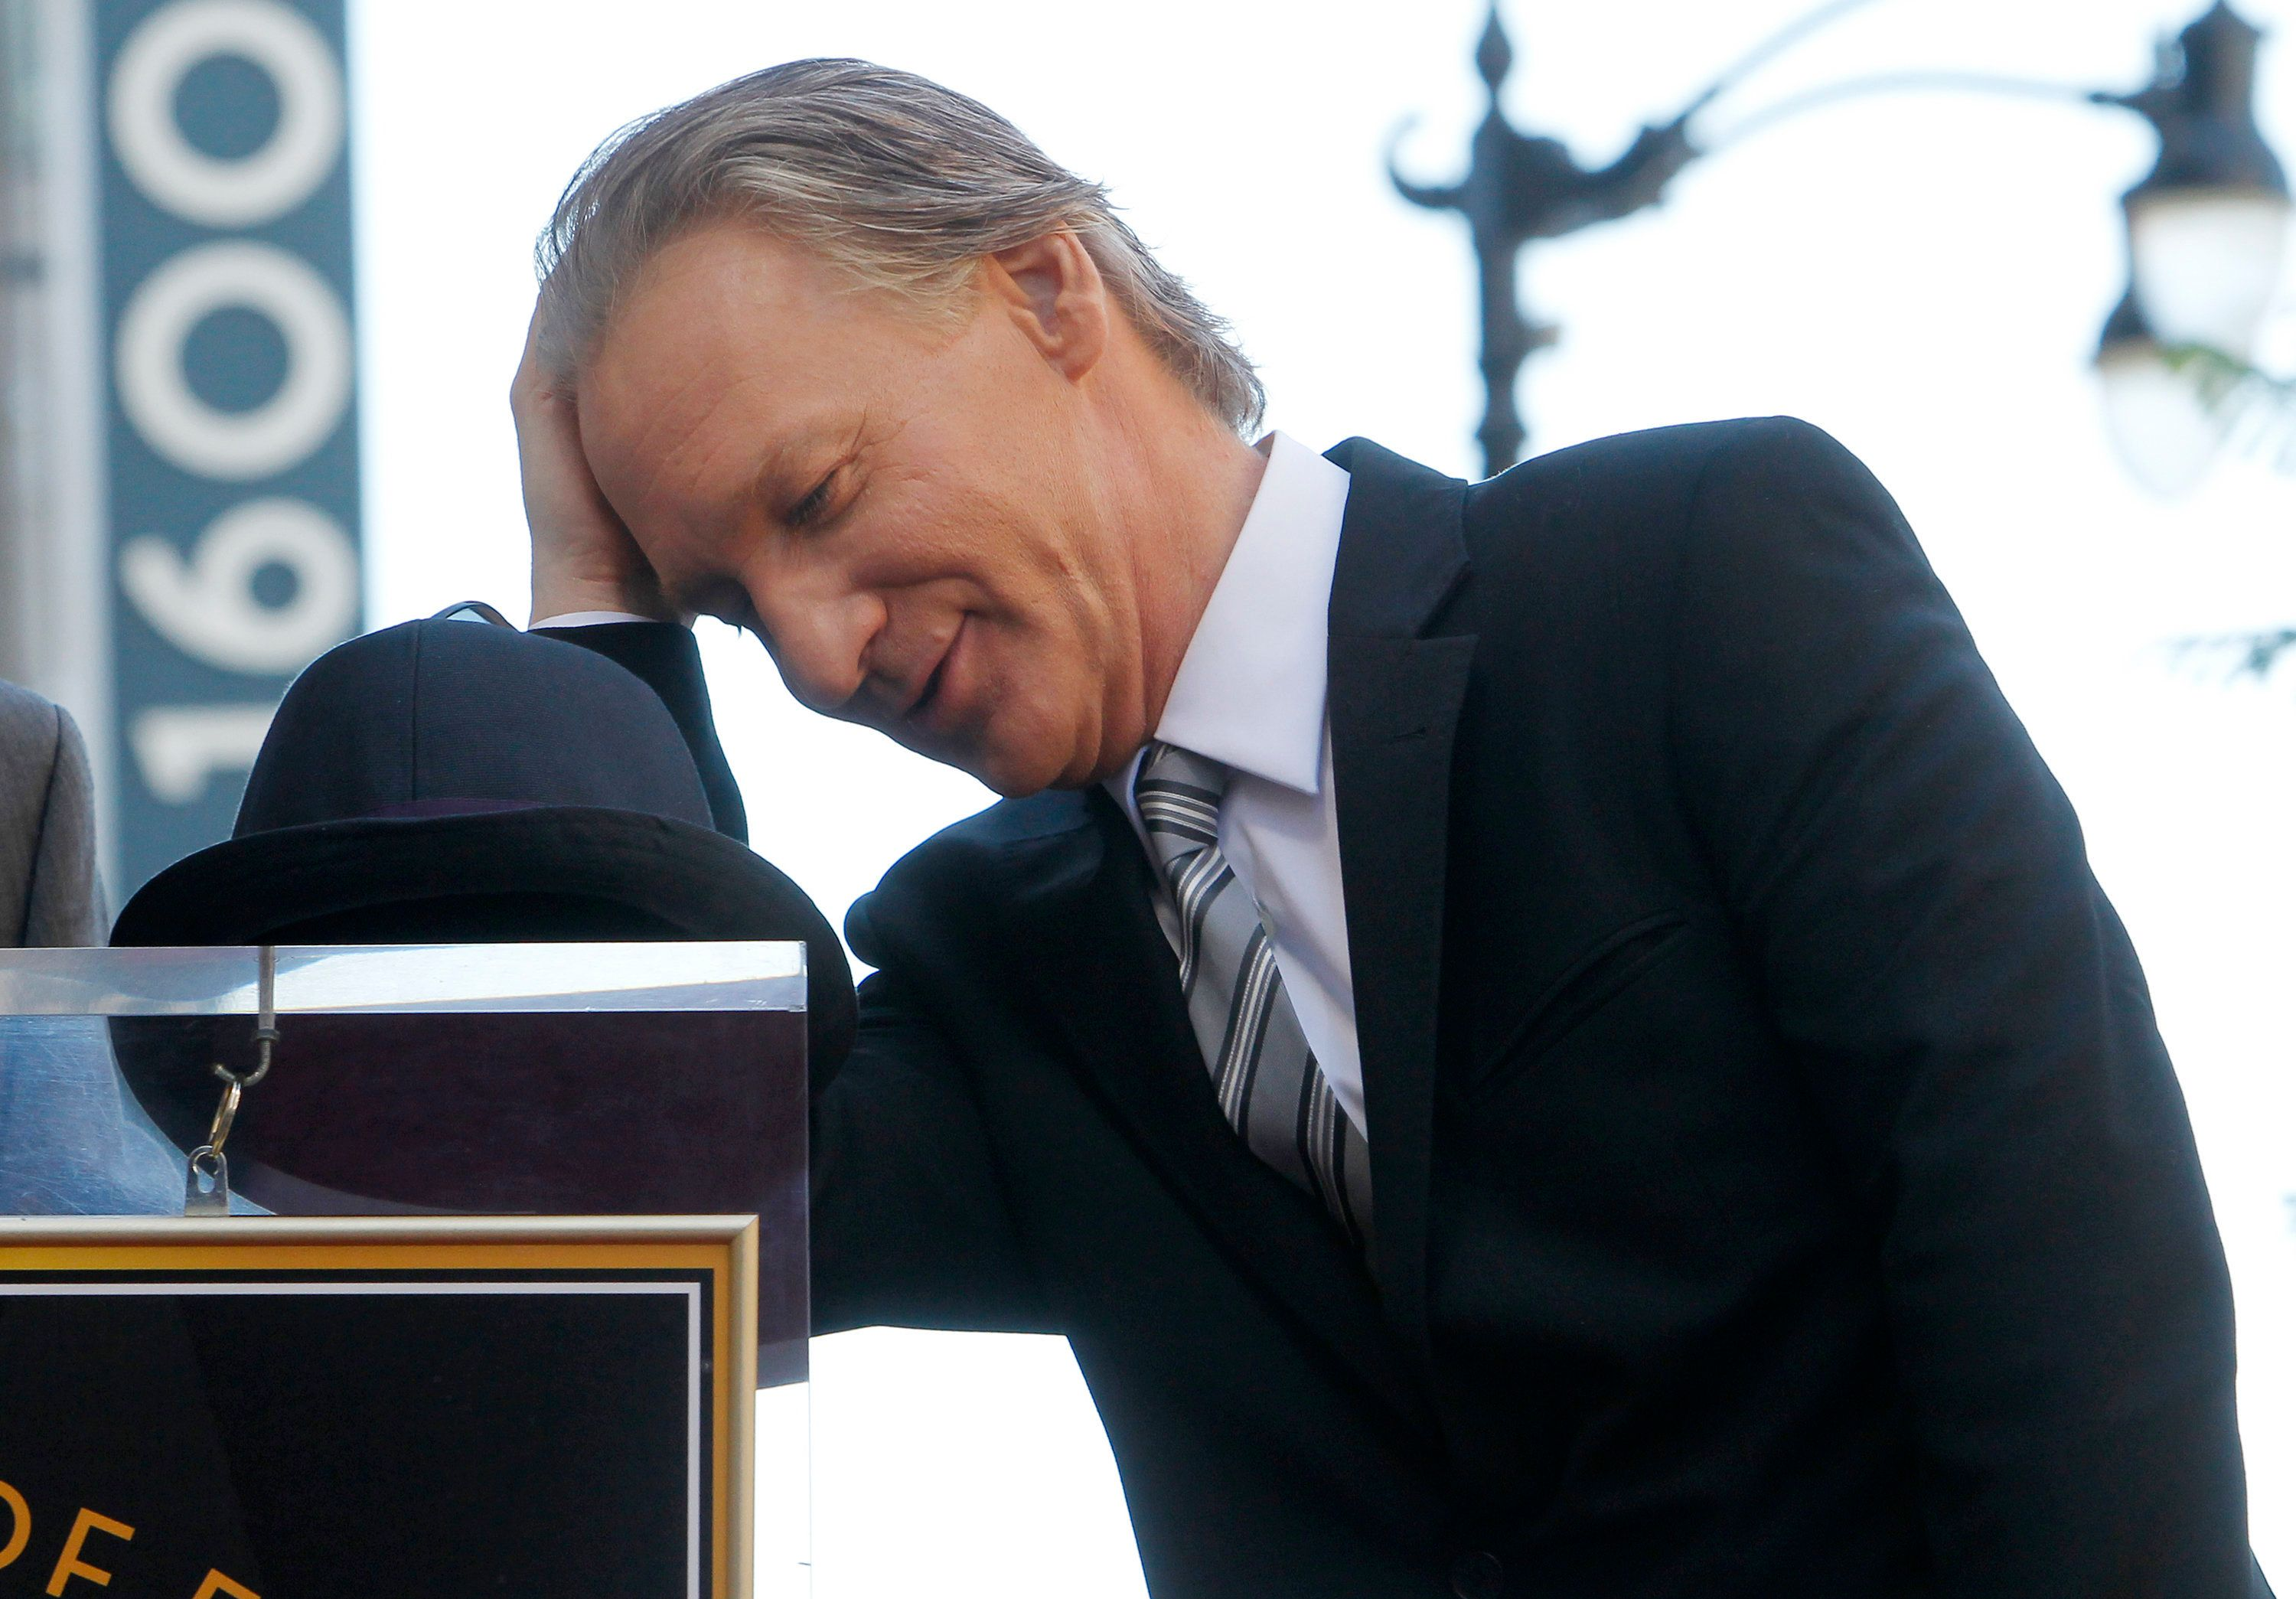 Comedian Bill Maher reacts as he waits for Hollywood Chamber of Commerce president and CEO Leron Gubler to finish his introduction of King at ceremonies unveiling Maher's star on the Hollywood Walk of Fame in Hollywood September 14, 2010.  REUTERS/Fred Prouser   (UNITED STATES - Tags: ENTERTAINMENT)